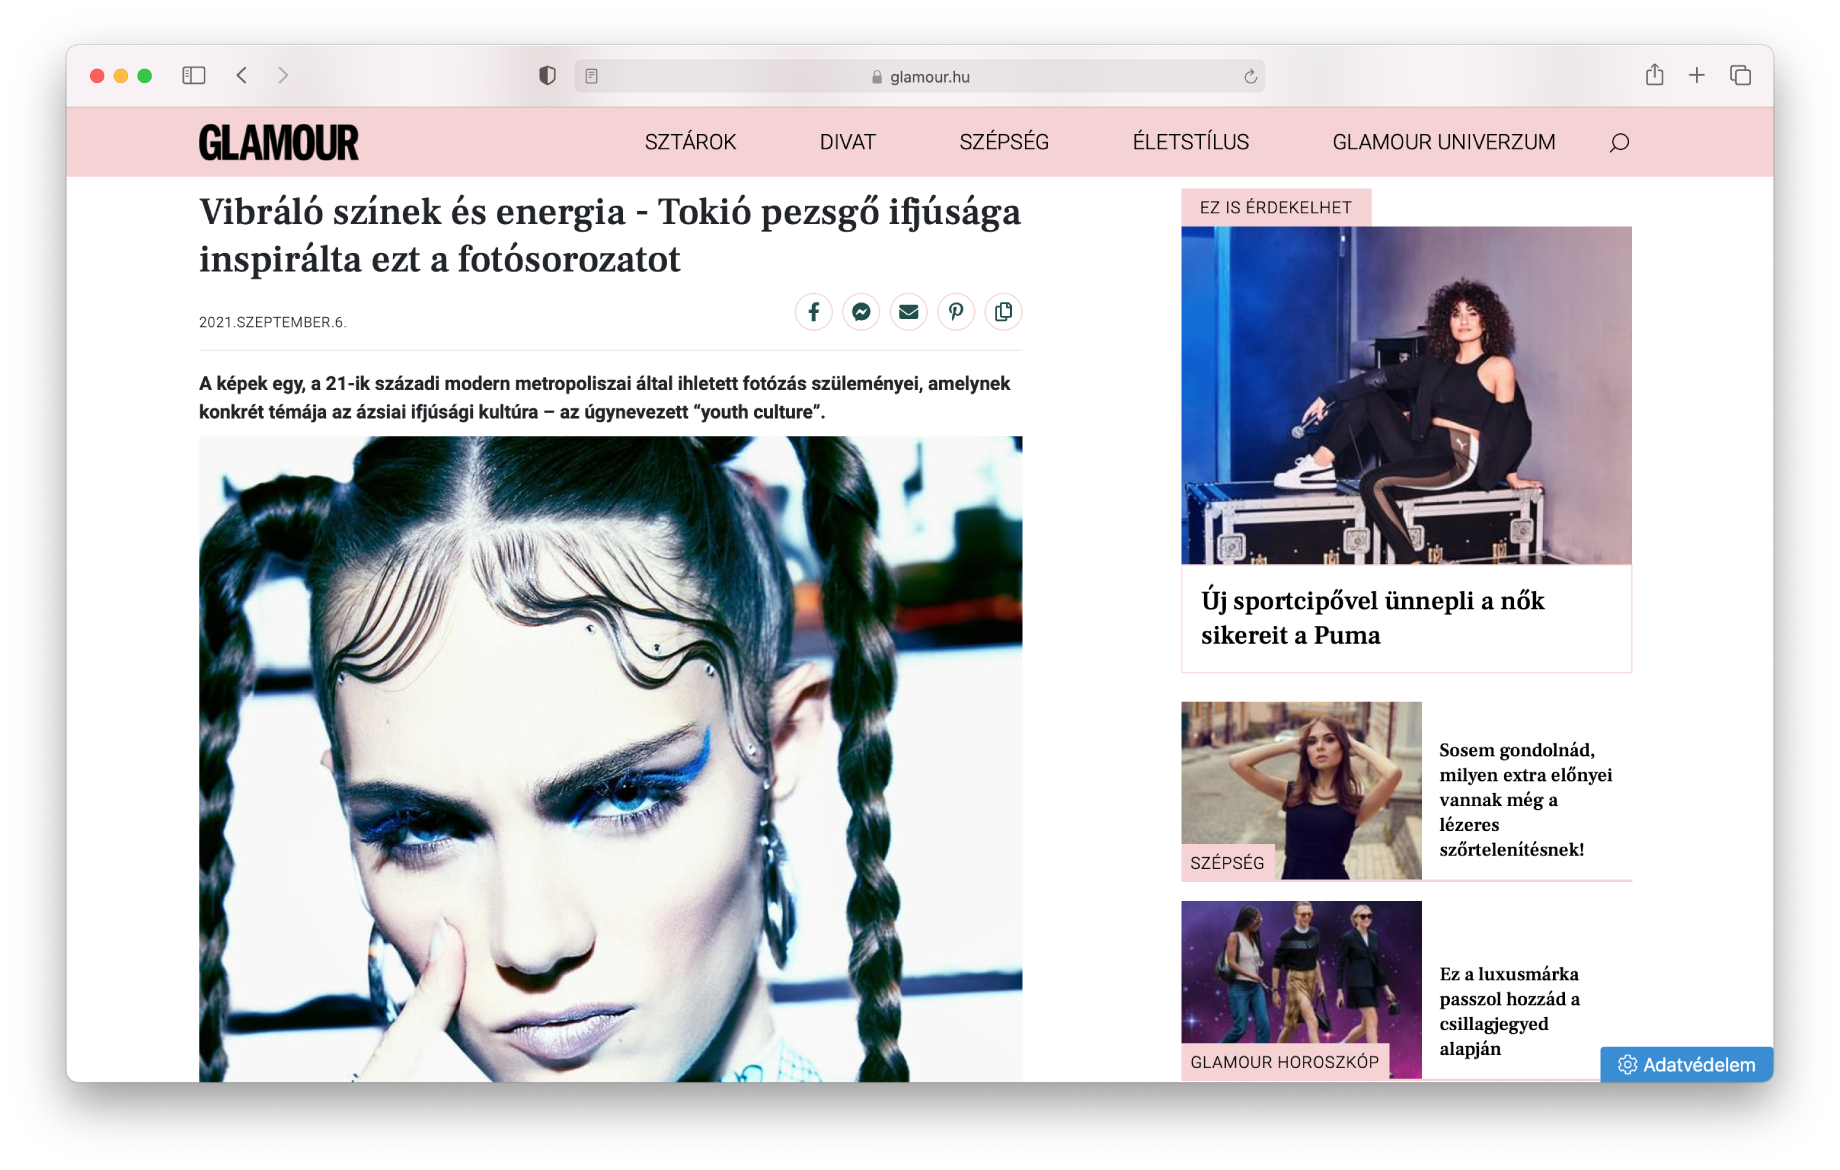 Screen shot of Glamour Hungary article featuring images by Illya Ovchar